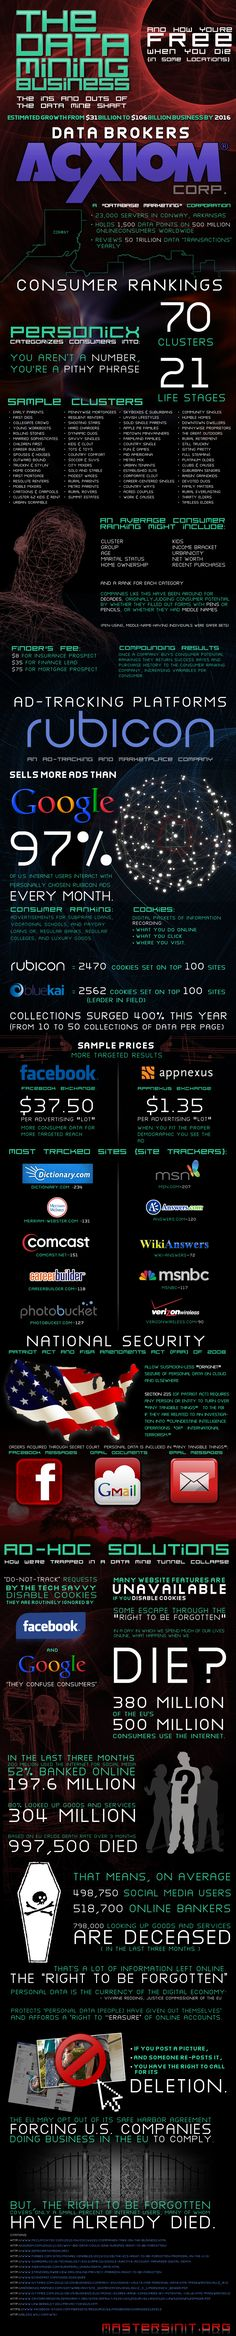 The data mining business #infographic